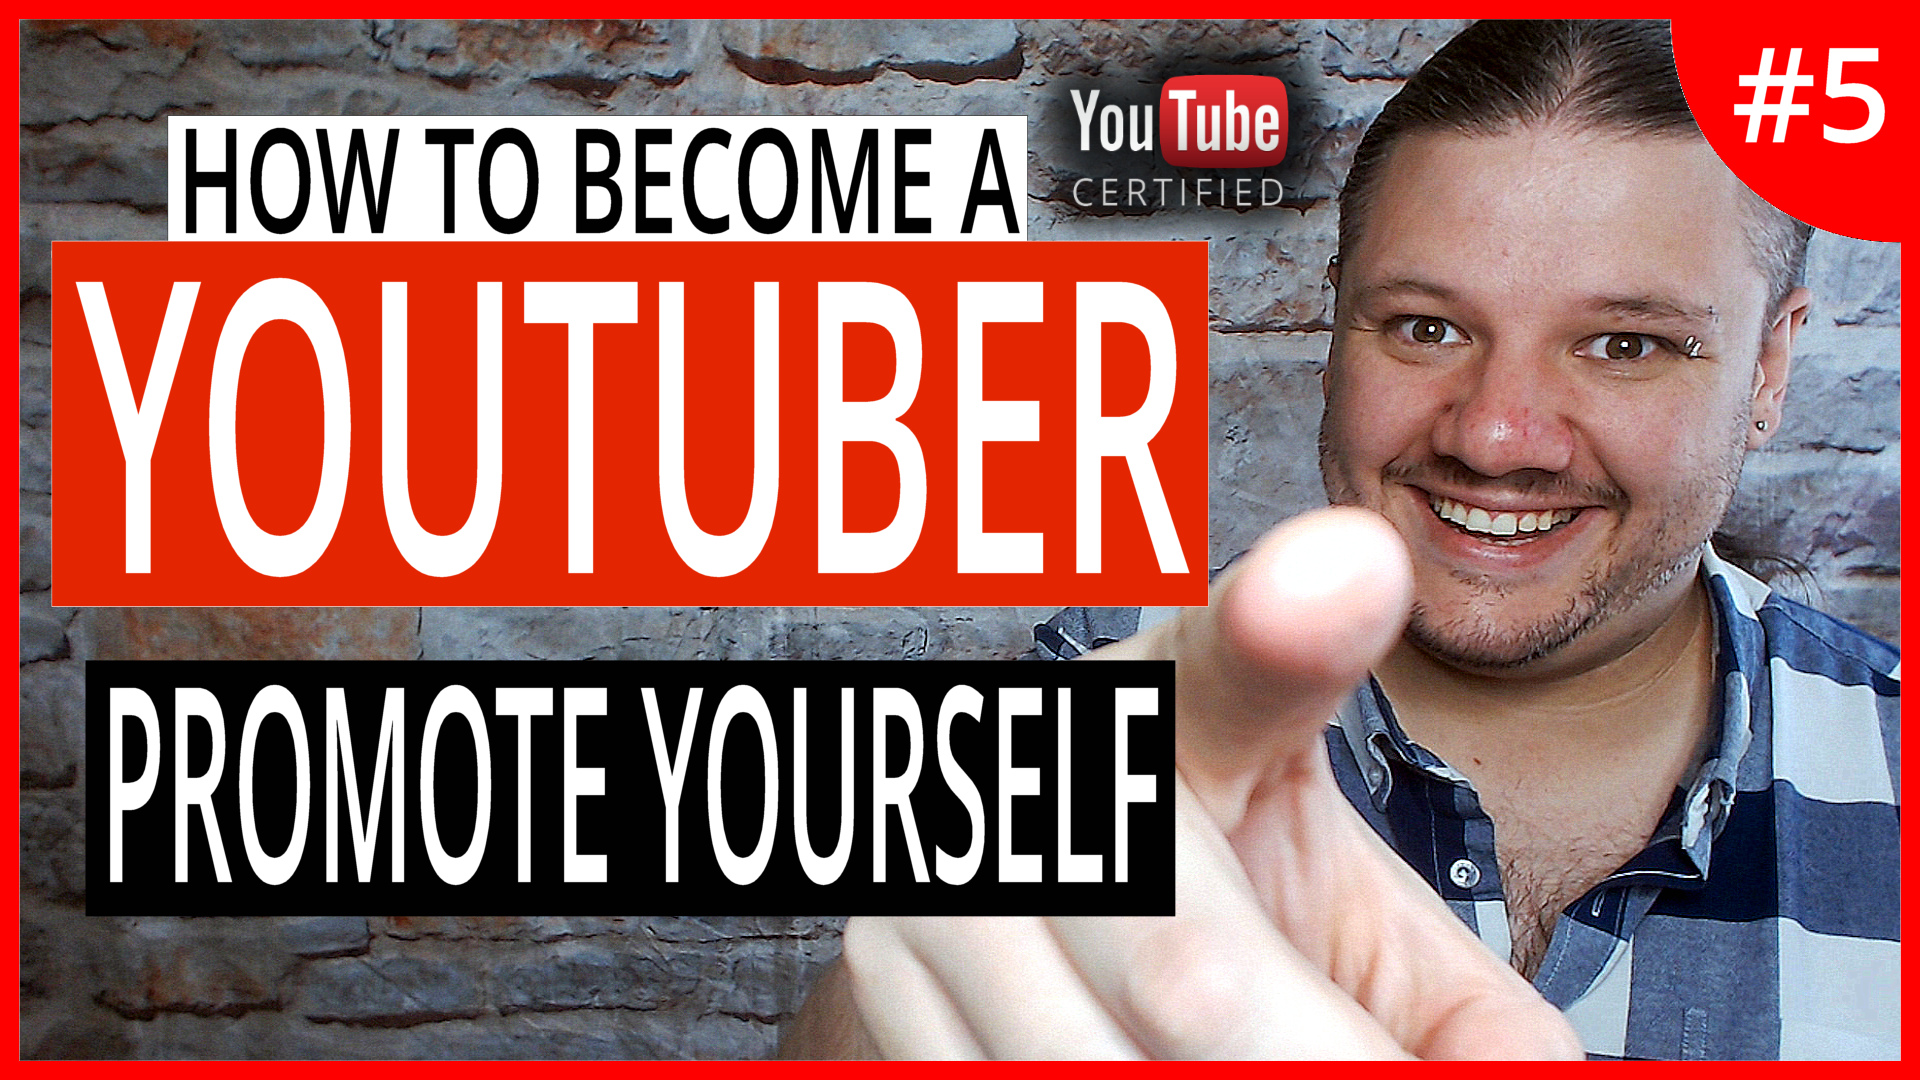 alan spicer,alanspicer,youtube tips,how to promote your youtube channel,how to promote your youtube video,promote your youtube channel,promote your youtube video,how to become a youtuber,become a youtuber,become a youtuber 2018,youtube channel,how to grow on youtube,how to grow your youtube channel,grow your youtube channel,how to promote youtube videos,how to youtube,youtube growth,youtube promotion,youtube,how to,youtube video promotion,youtube marketing